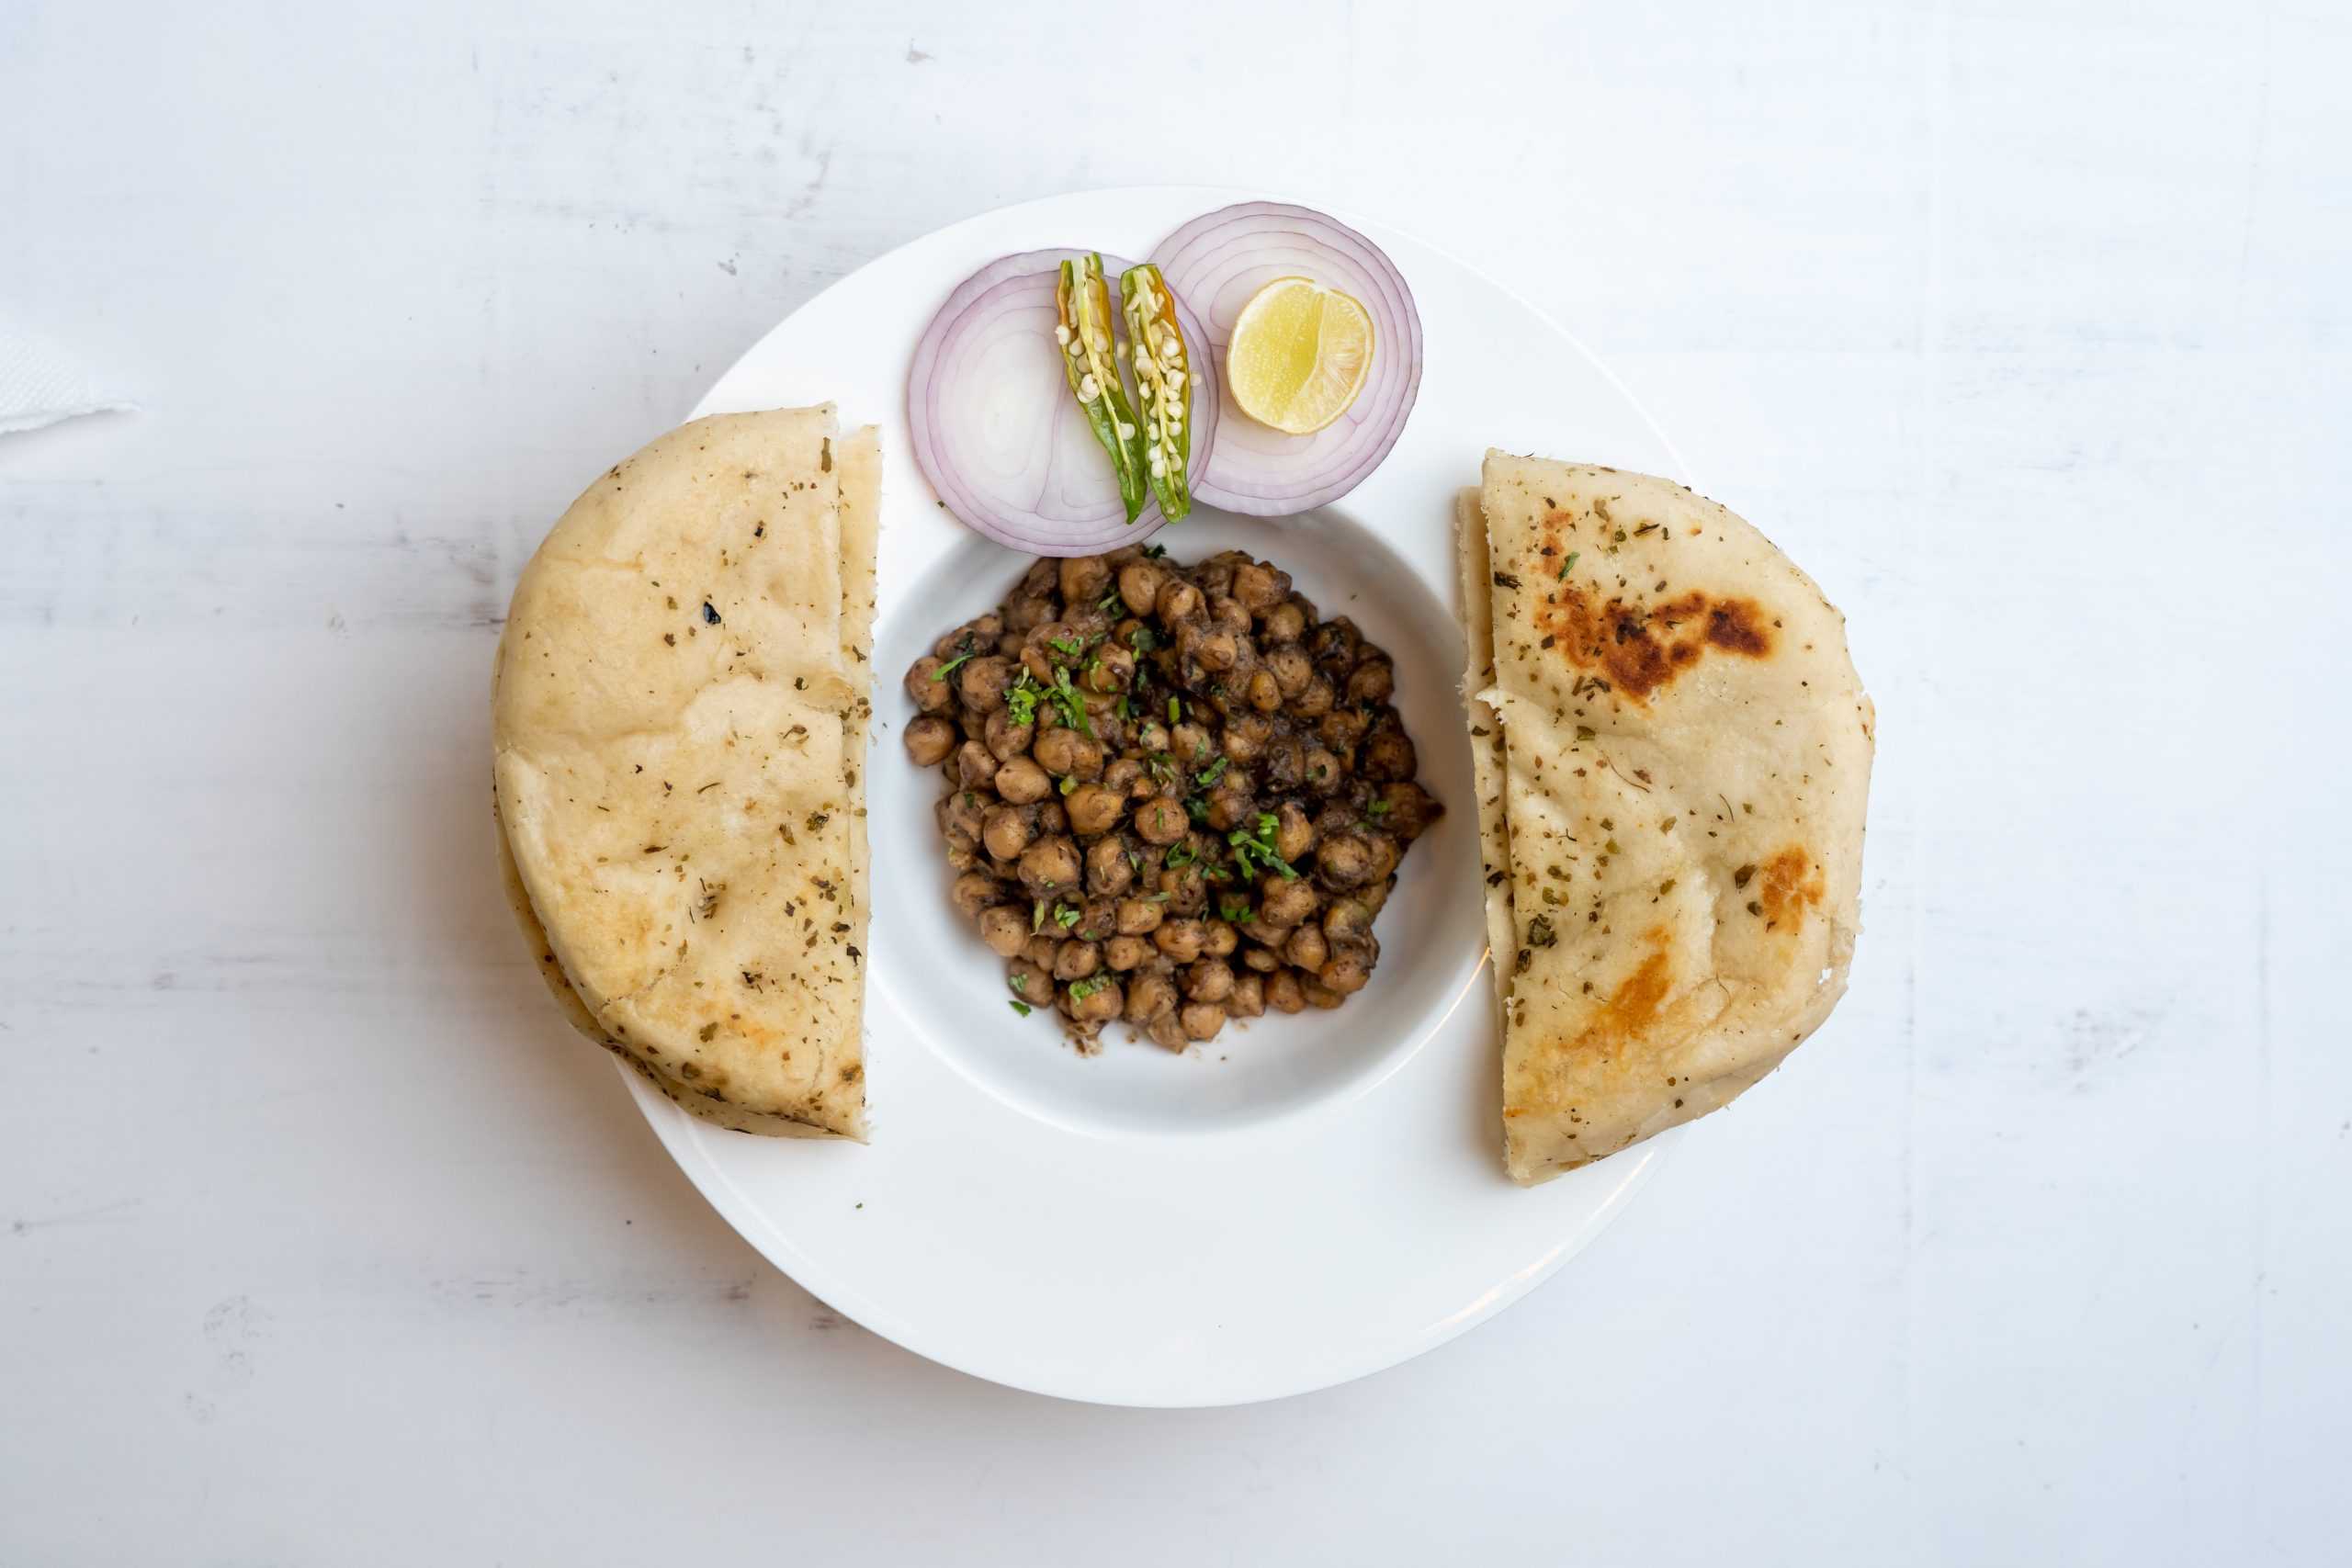 Chole kulche in a plate